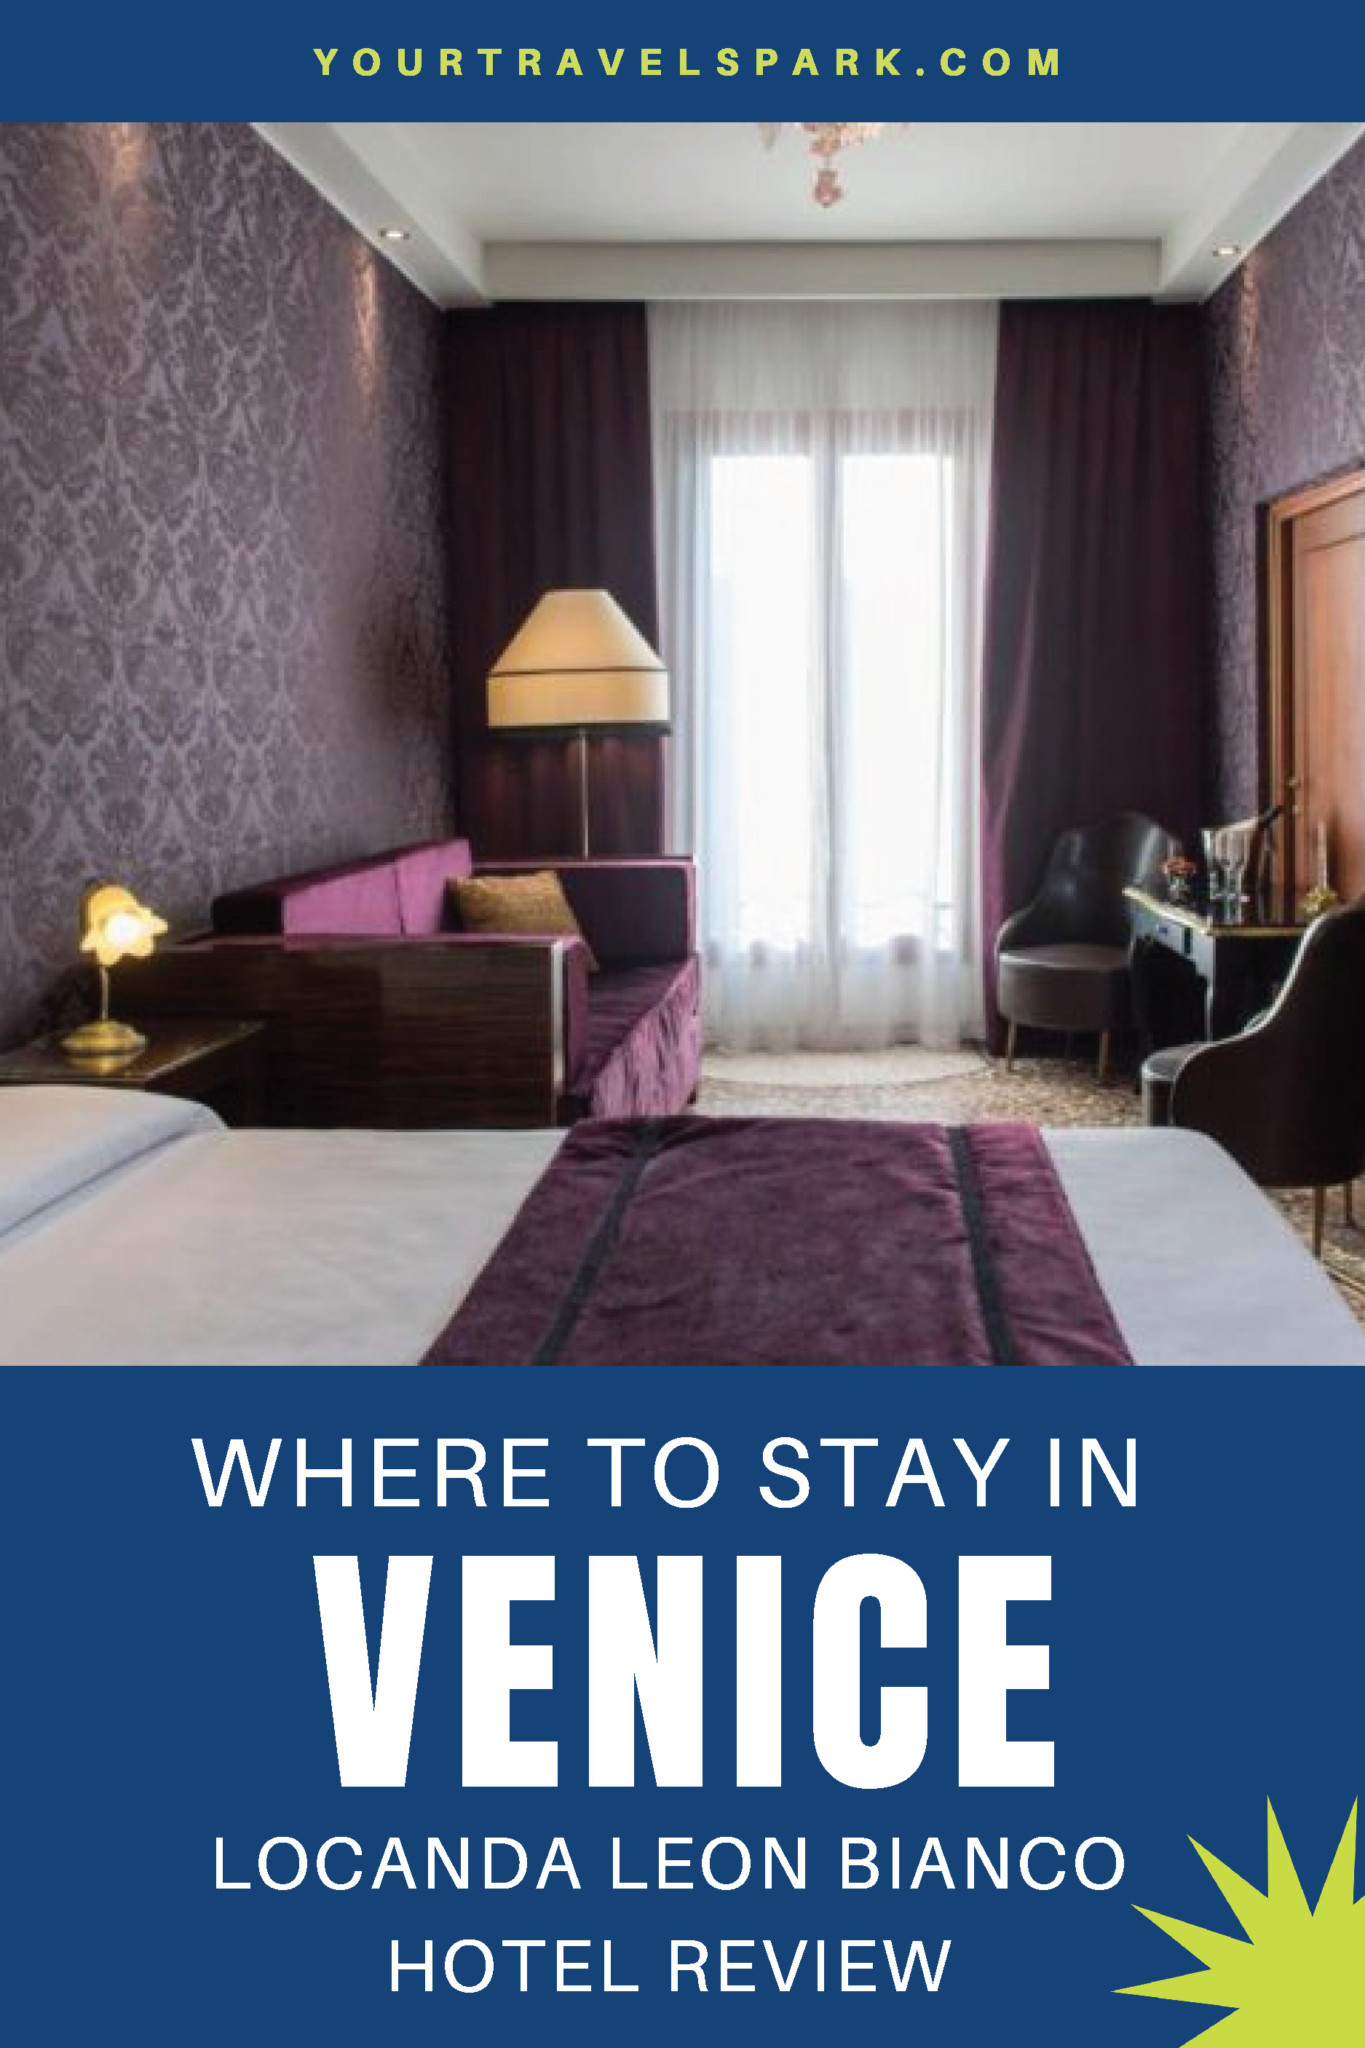 Finding a place to stay in Venice, Italy can be an overwhelming experience. Here is our review of a wonderful hotel in Venice called Locanda Leon Bianco. #venice #veniceitaly #venicehotels #locandaleonbianco #venezia #italia